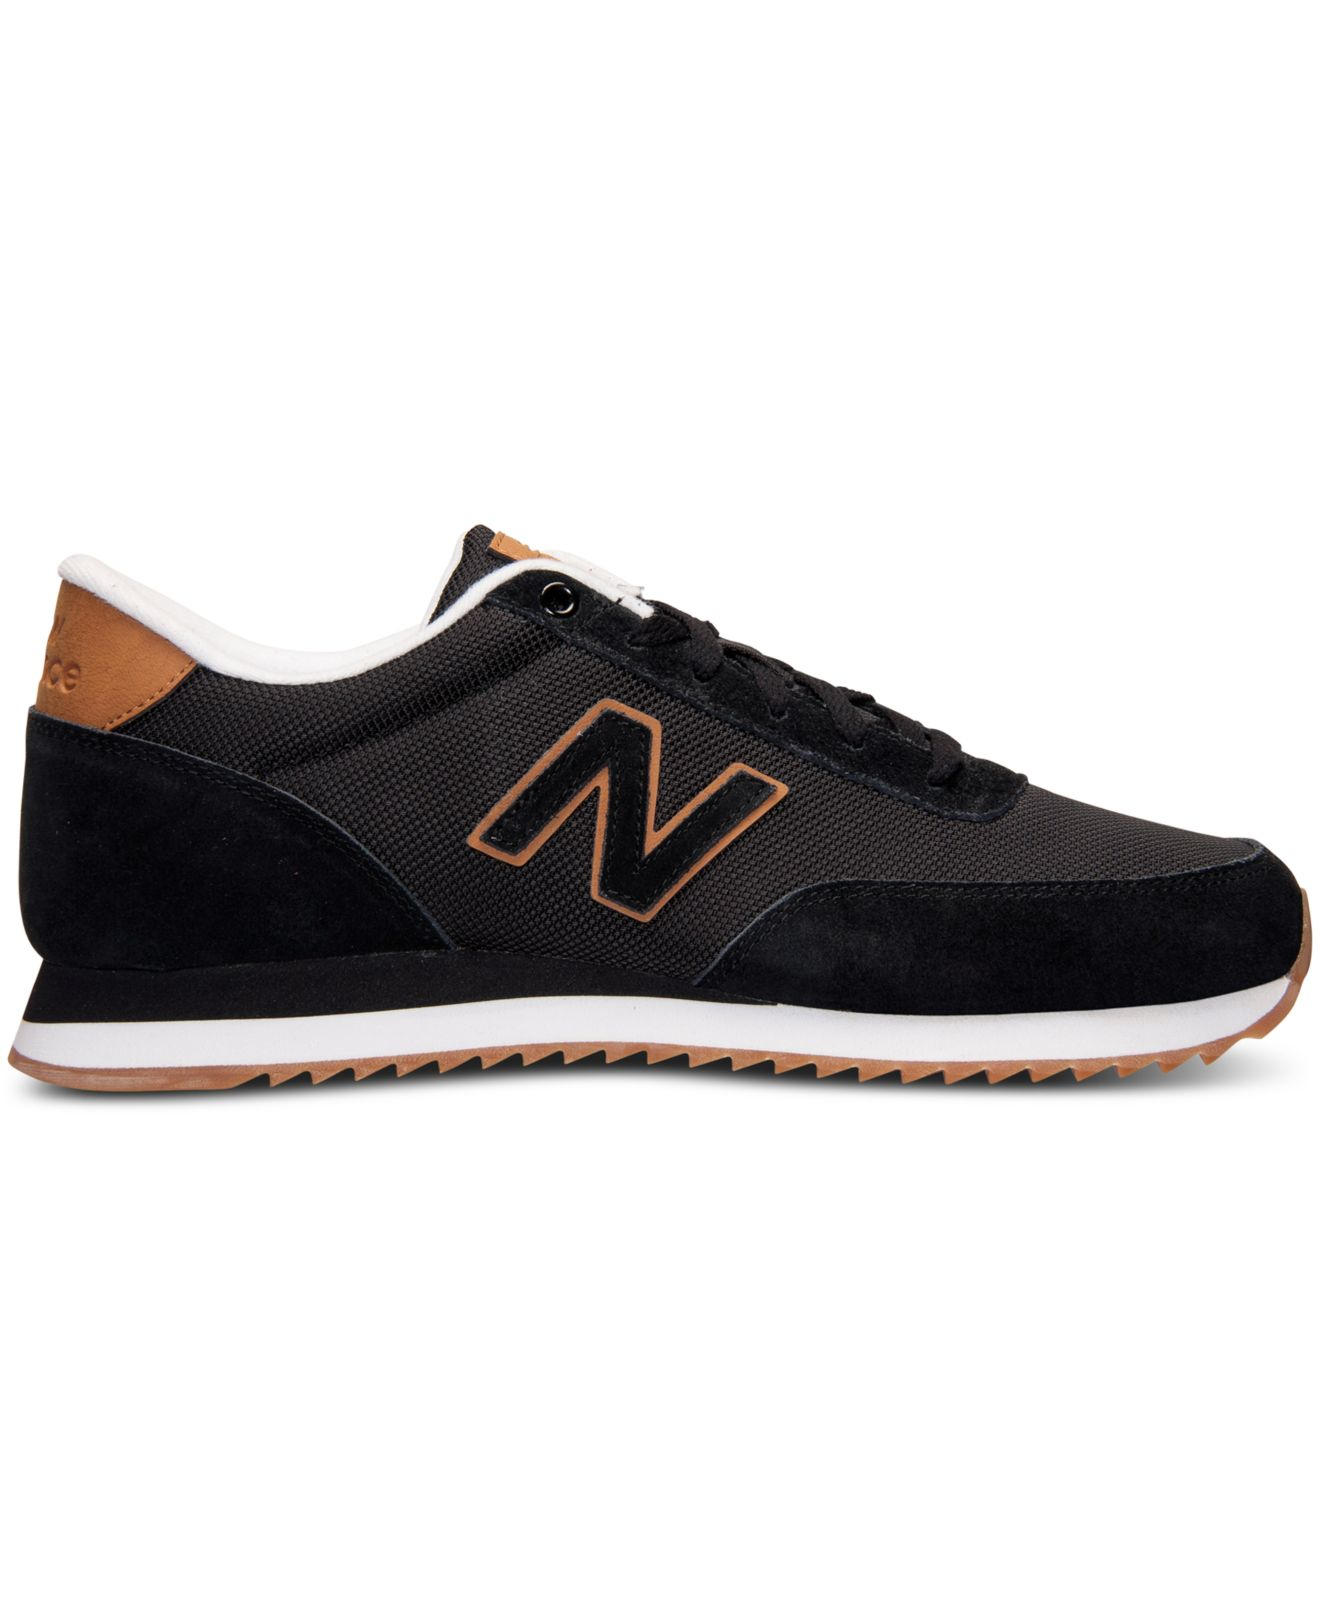 ... New balance Mens 501 Ripple Sole Casual Sneakers From Finish ...